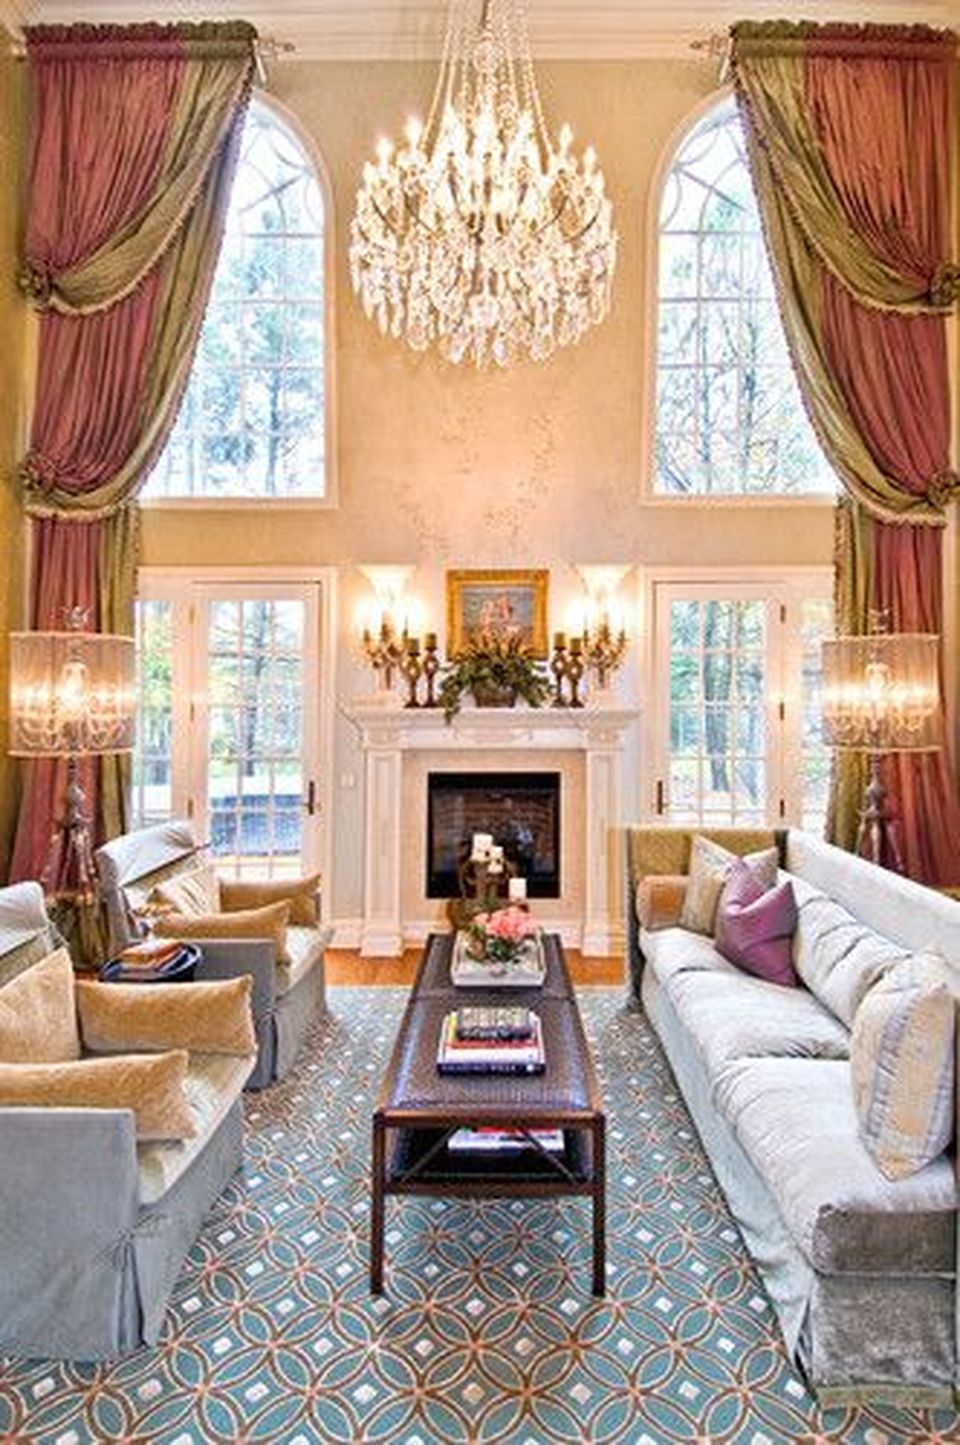 Awesome Tall Curtains Ideas for Living Room 7 - Hoommy.com on Living Room Curtains Ideas  id=71033